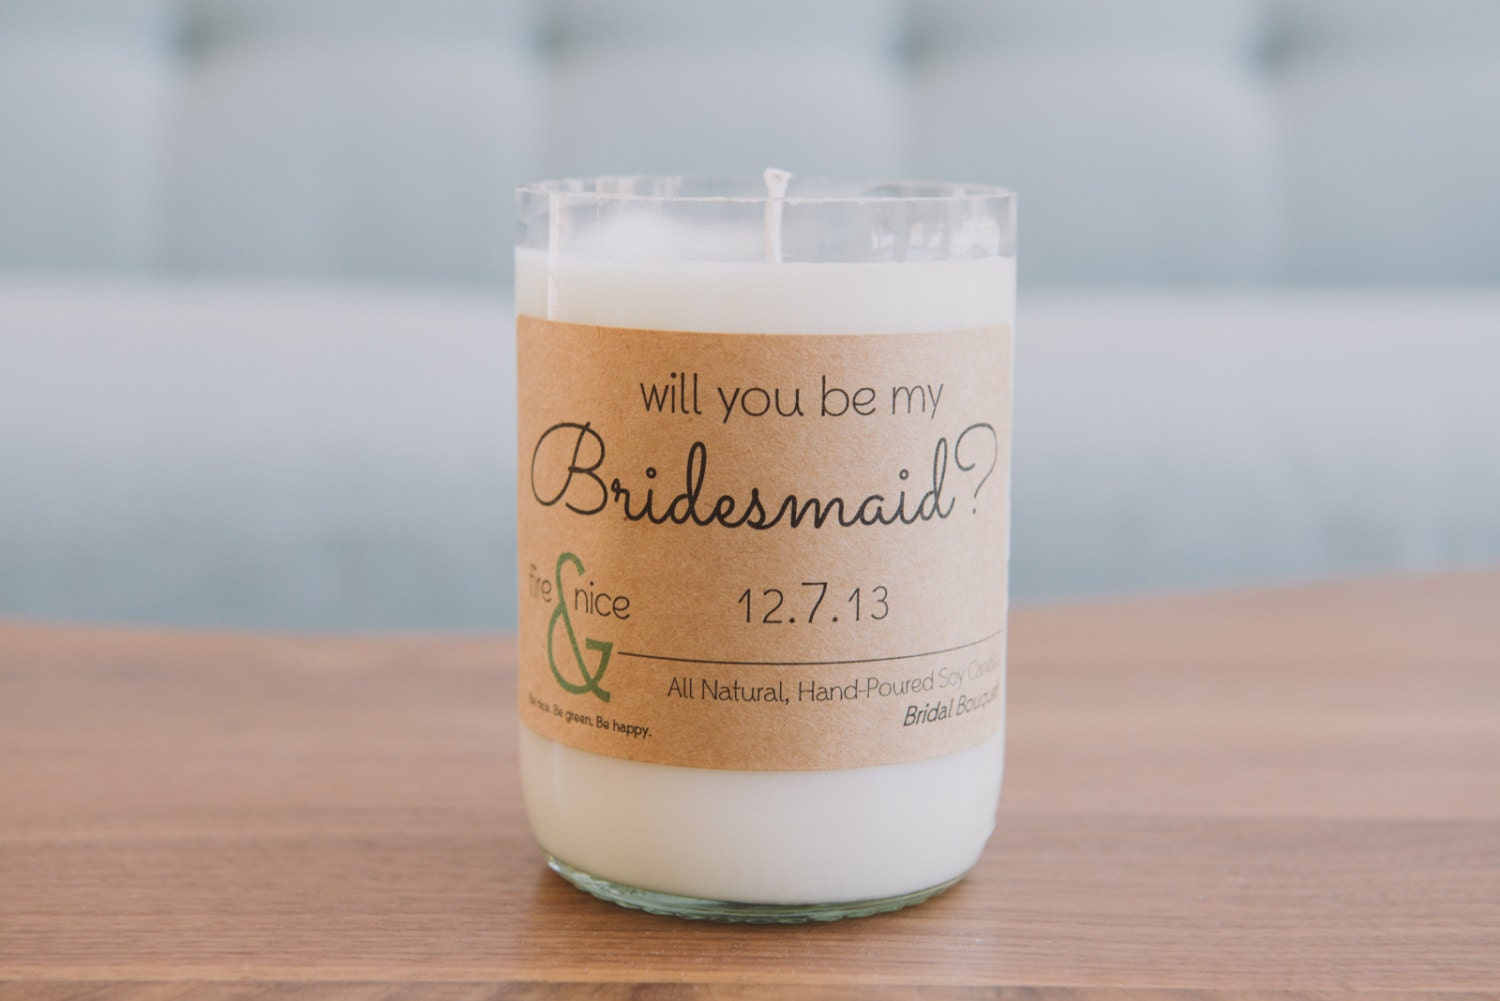 Will You Be My Bridesmaid -Wedding Party Candlegram - Soy Candle - Wine Bottle Candle - Eco-friendly Giftware - Greeting Card